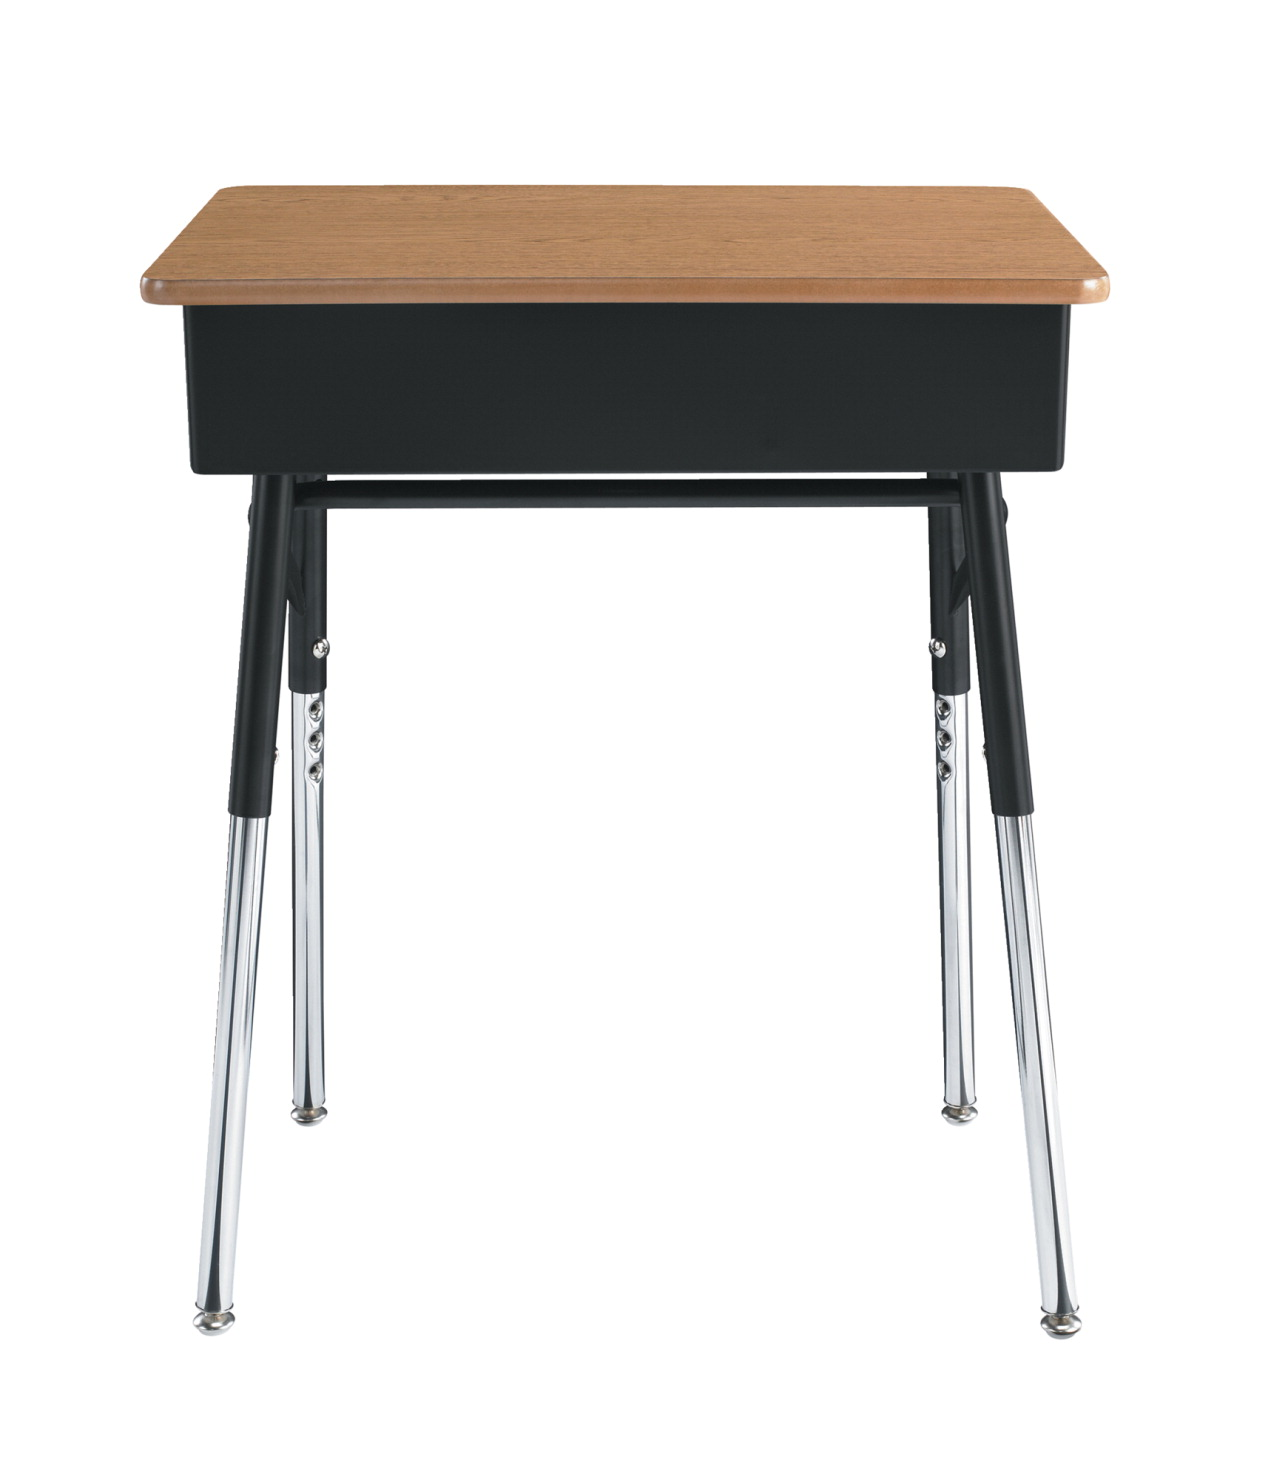 Classroom Select Traditional Open Front Desk Adjule Height 18 X 24 Inch Laminate Top